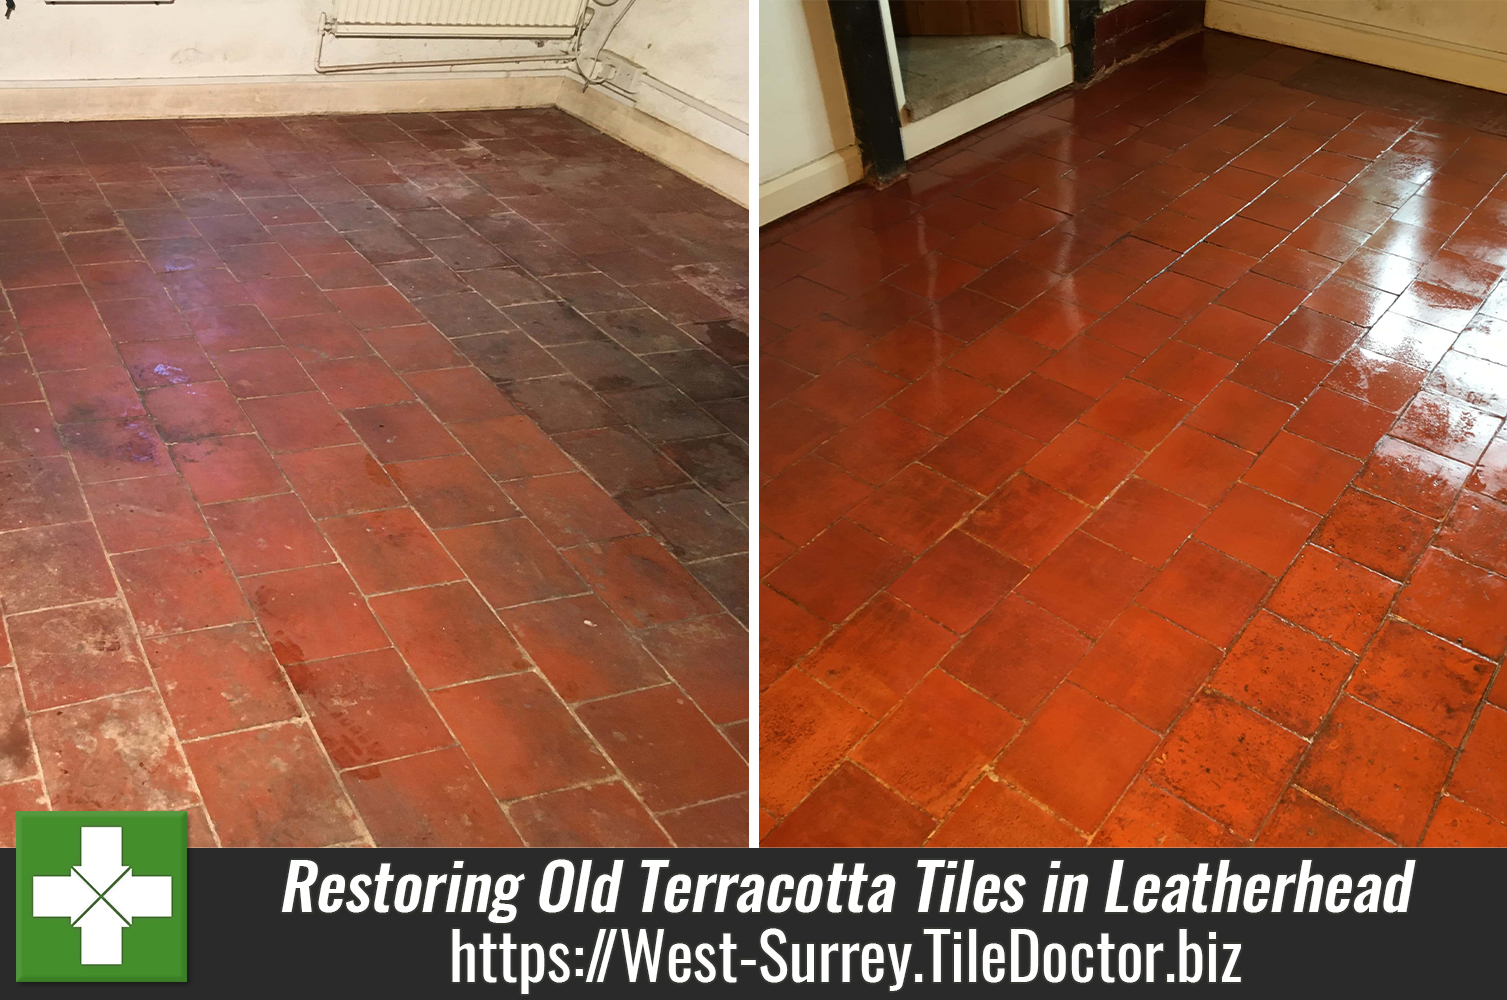 Terracotta-Floor-Before-After-Renovation-Leatherhead